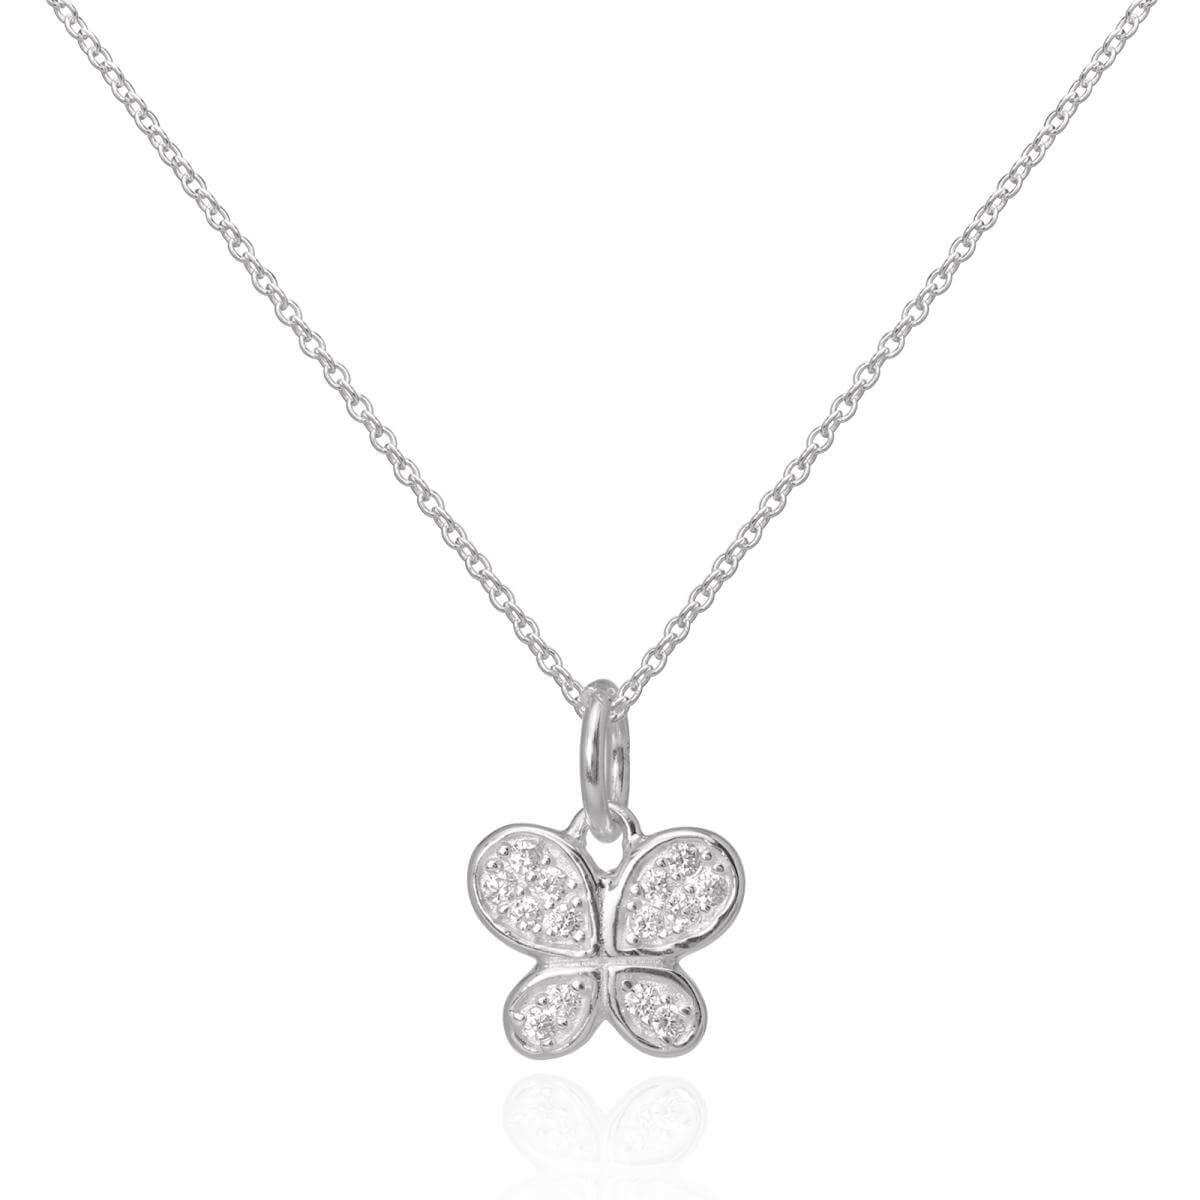 Sterling Silver CZ Crystal Encrusted Butterfly Pendant Necklace 16 - 22 Inches